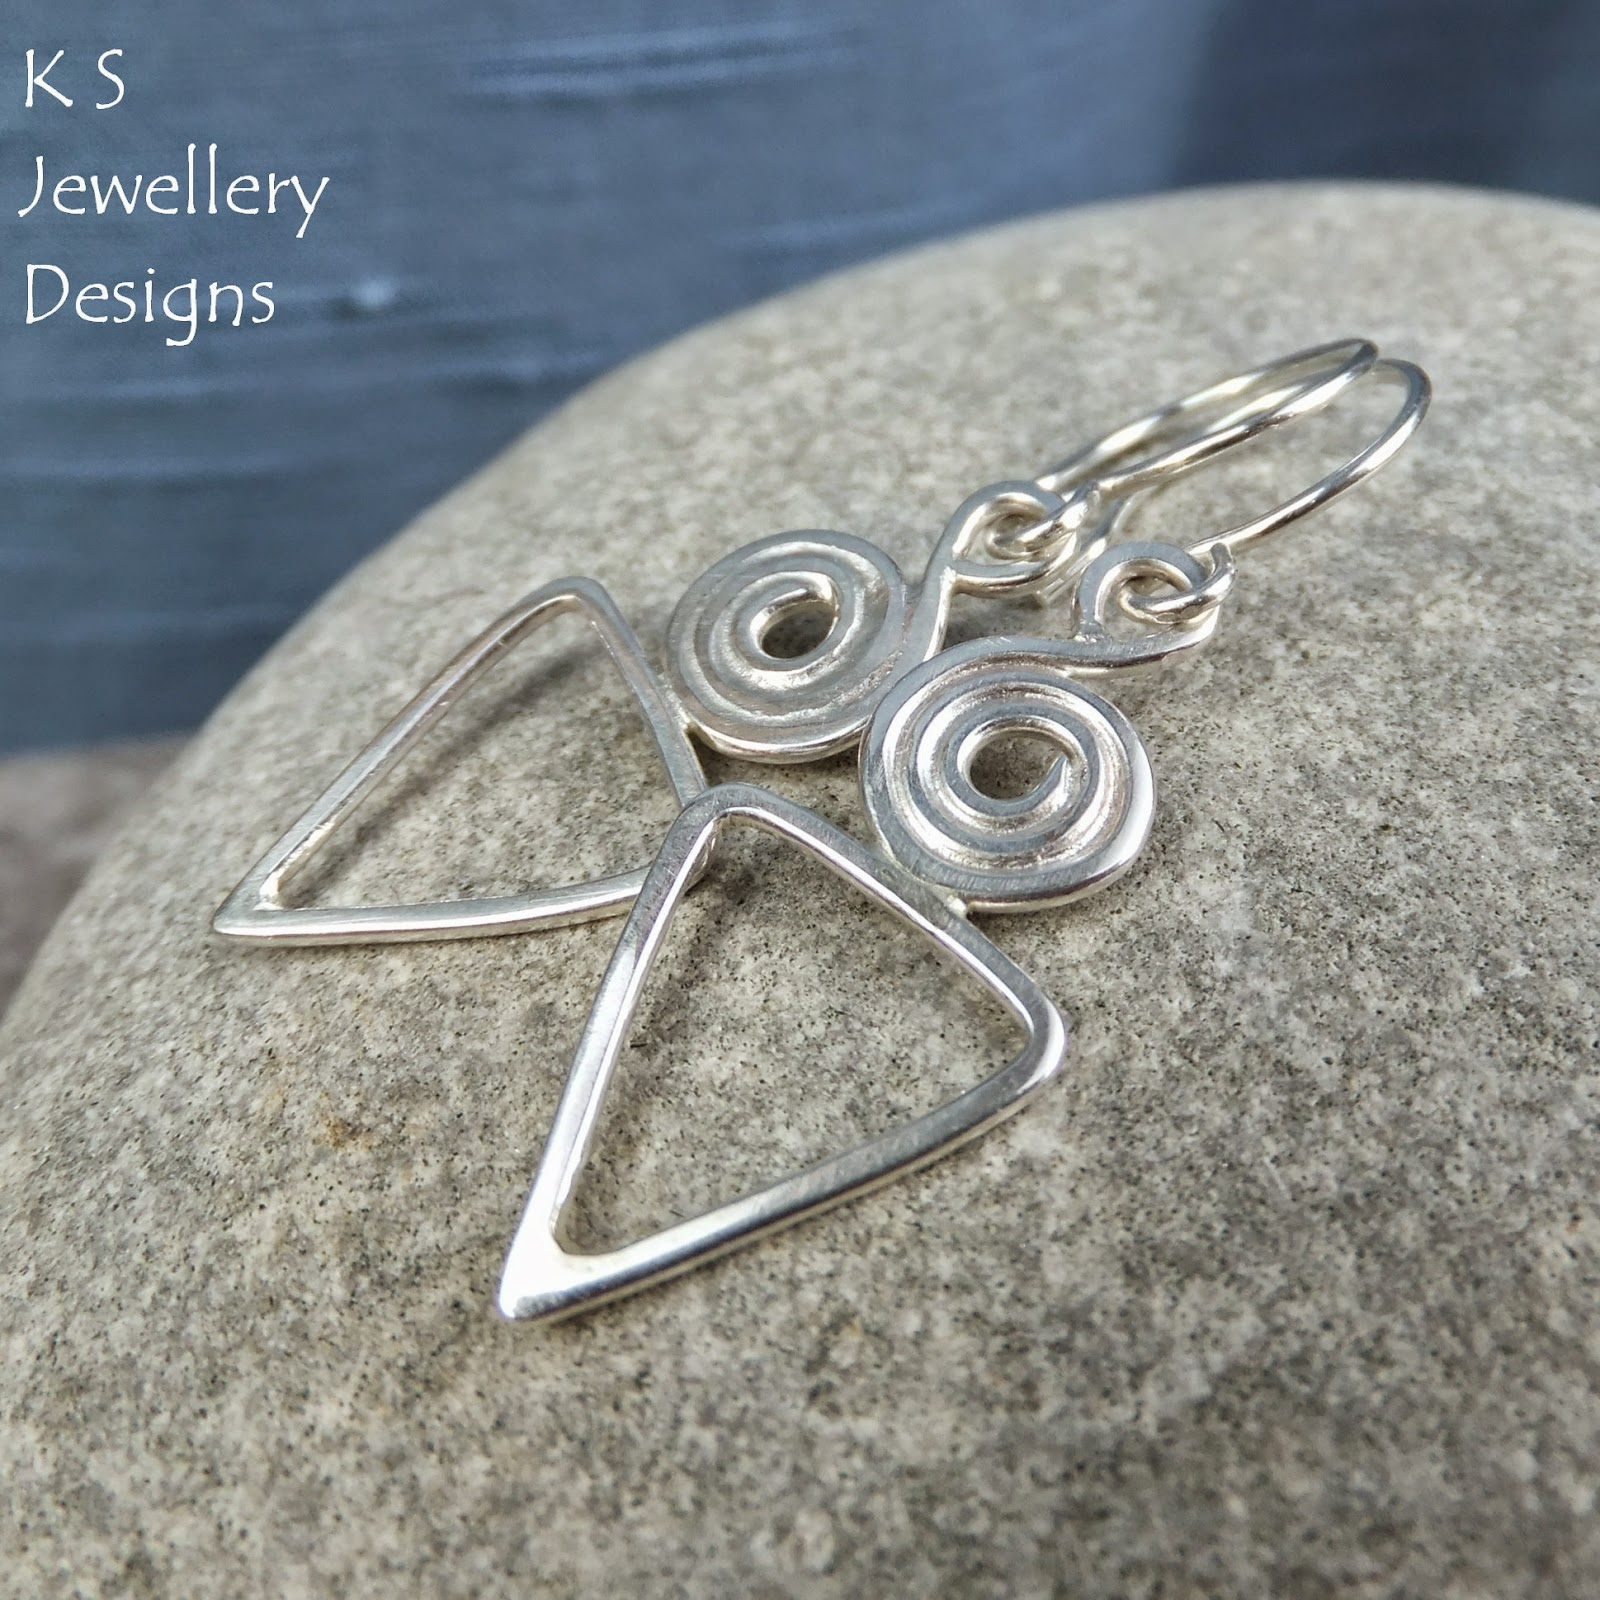 http://ksjewellerydesigns.co.uk/ourshop/prod_3588754-Sterling-Silver-Geometric-Earrings-Aztec-Style.html